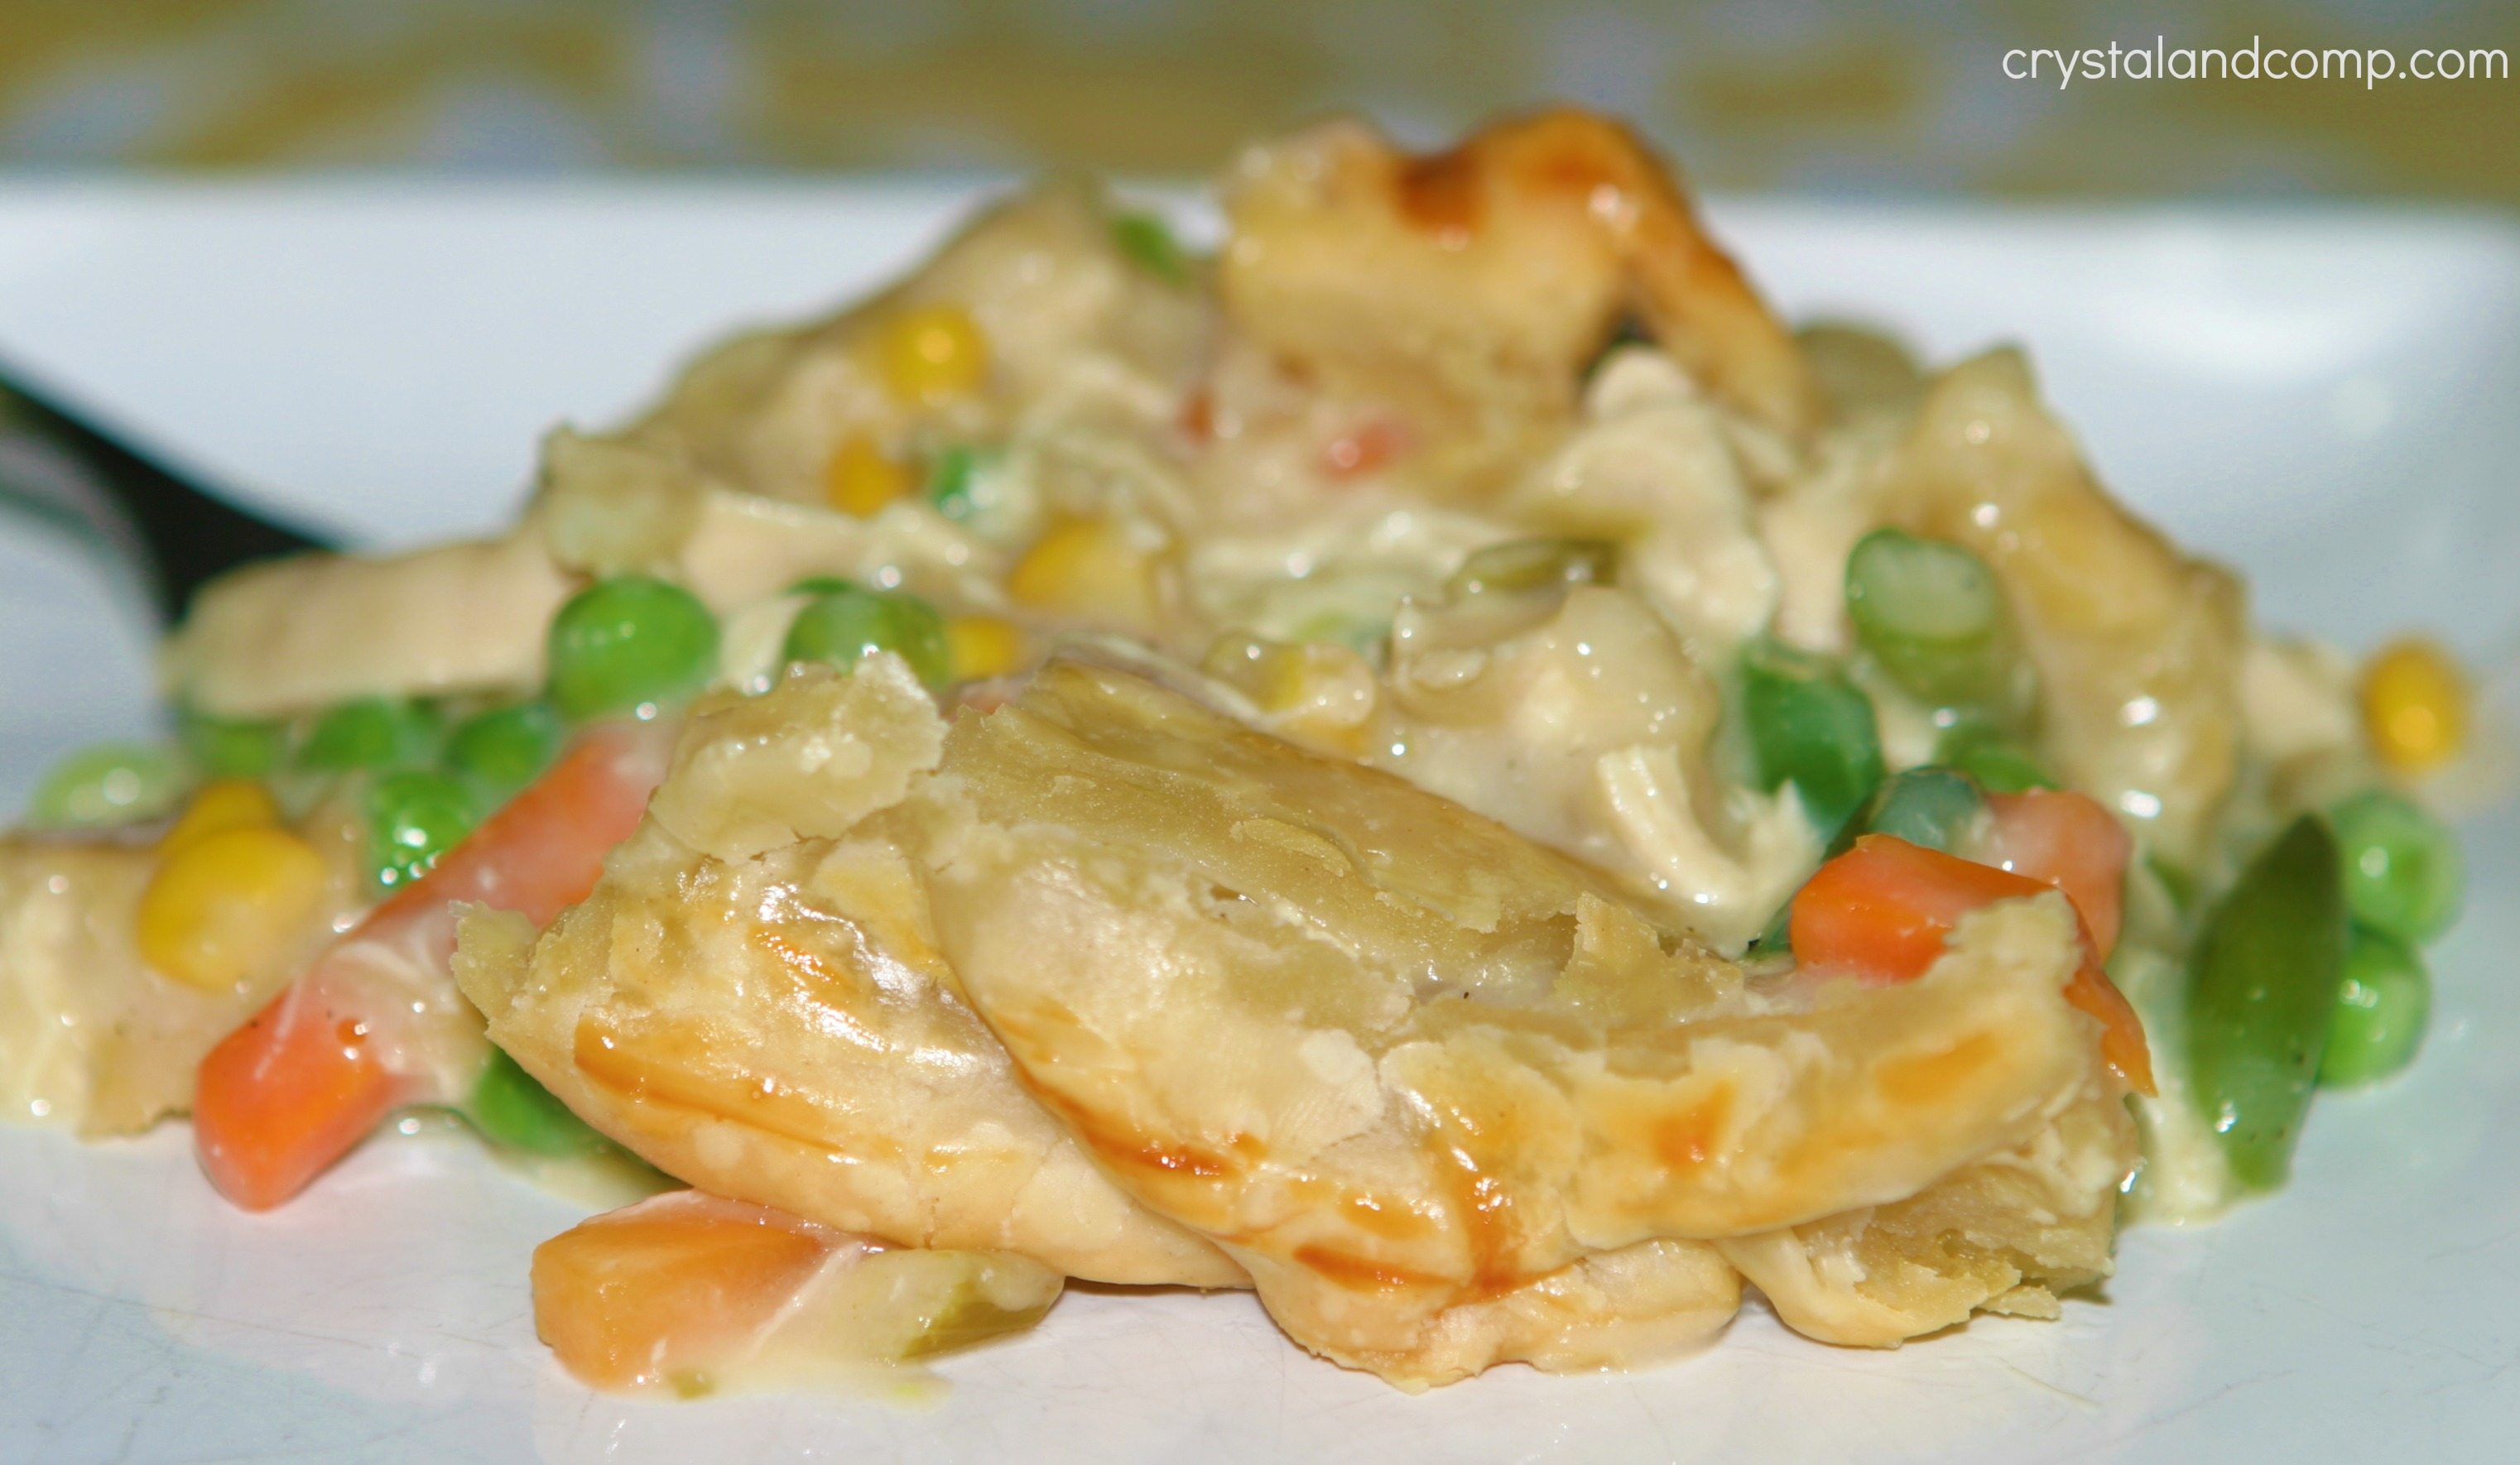 Easy Recipes: Chicken Pot Pie | CrystalandComp.com